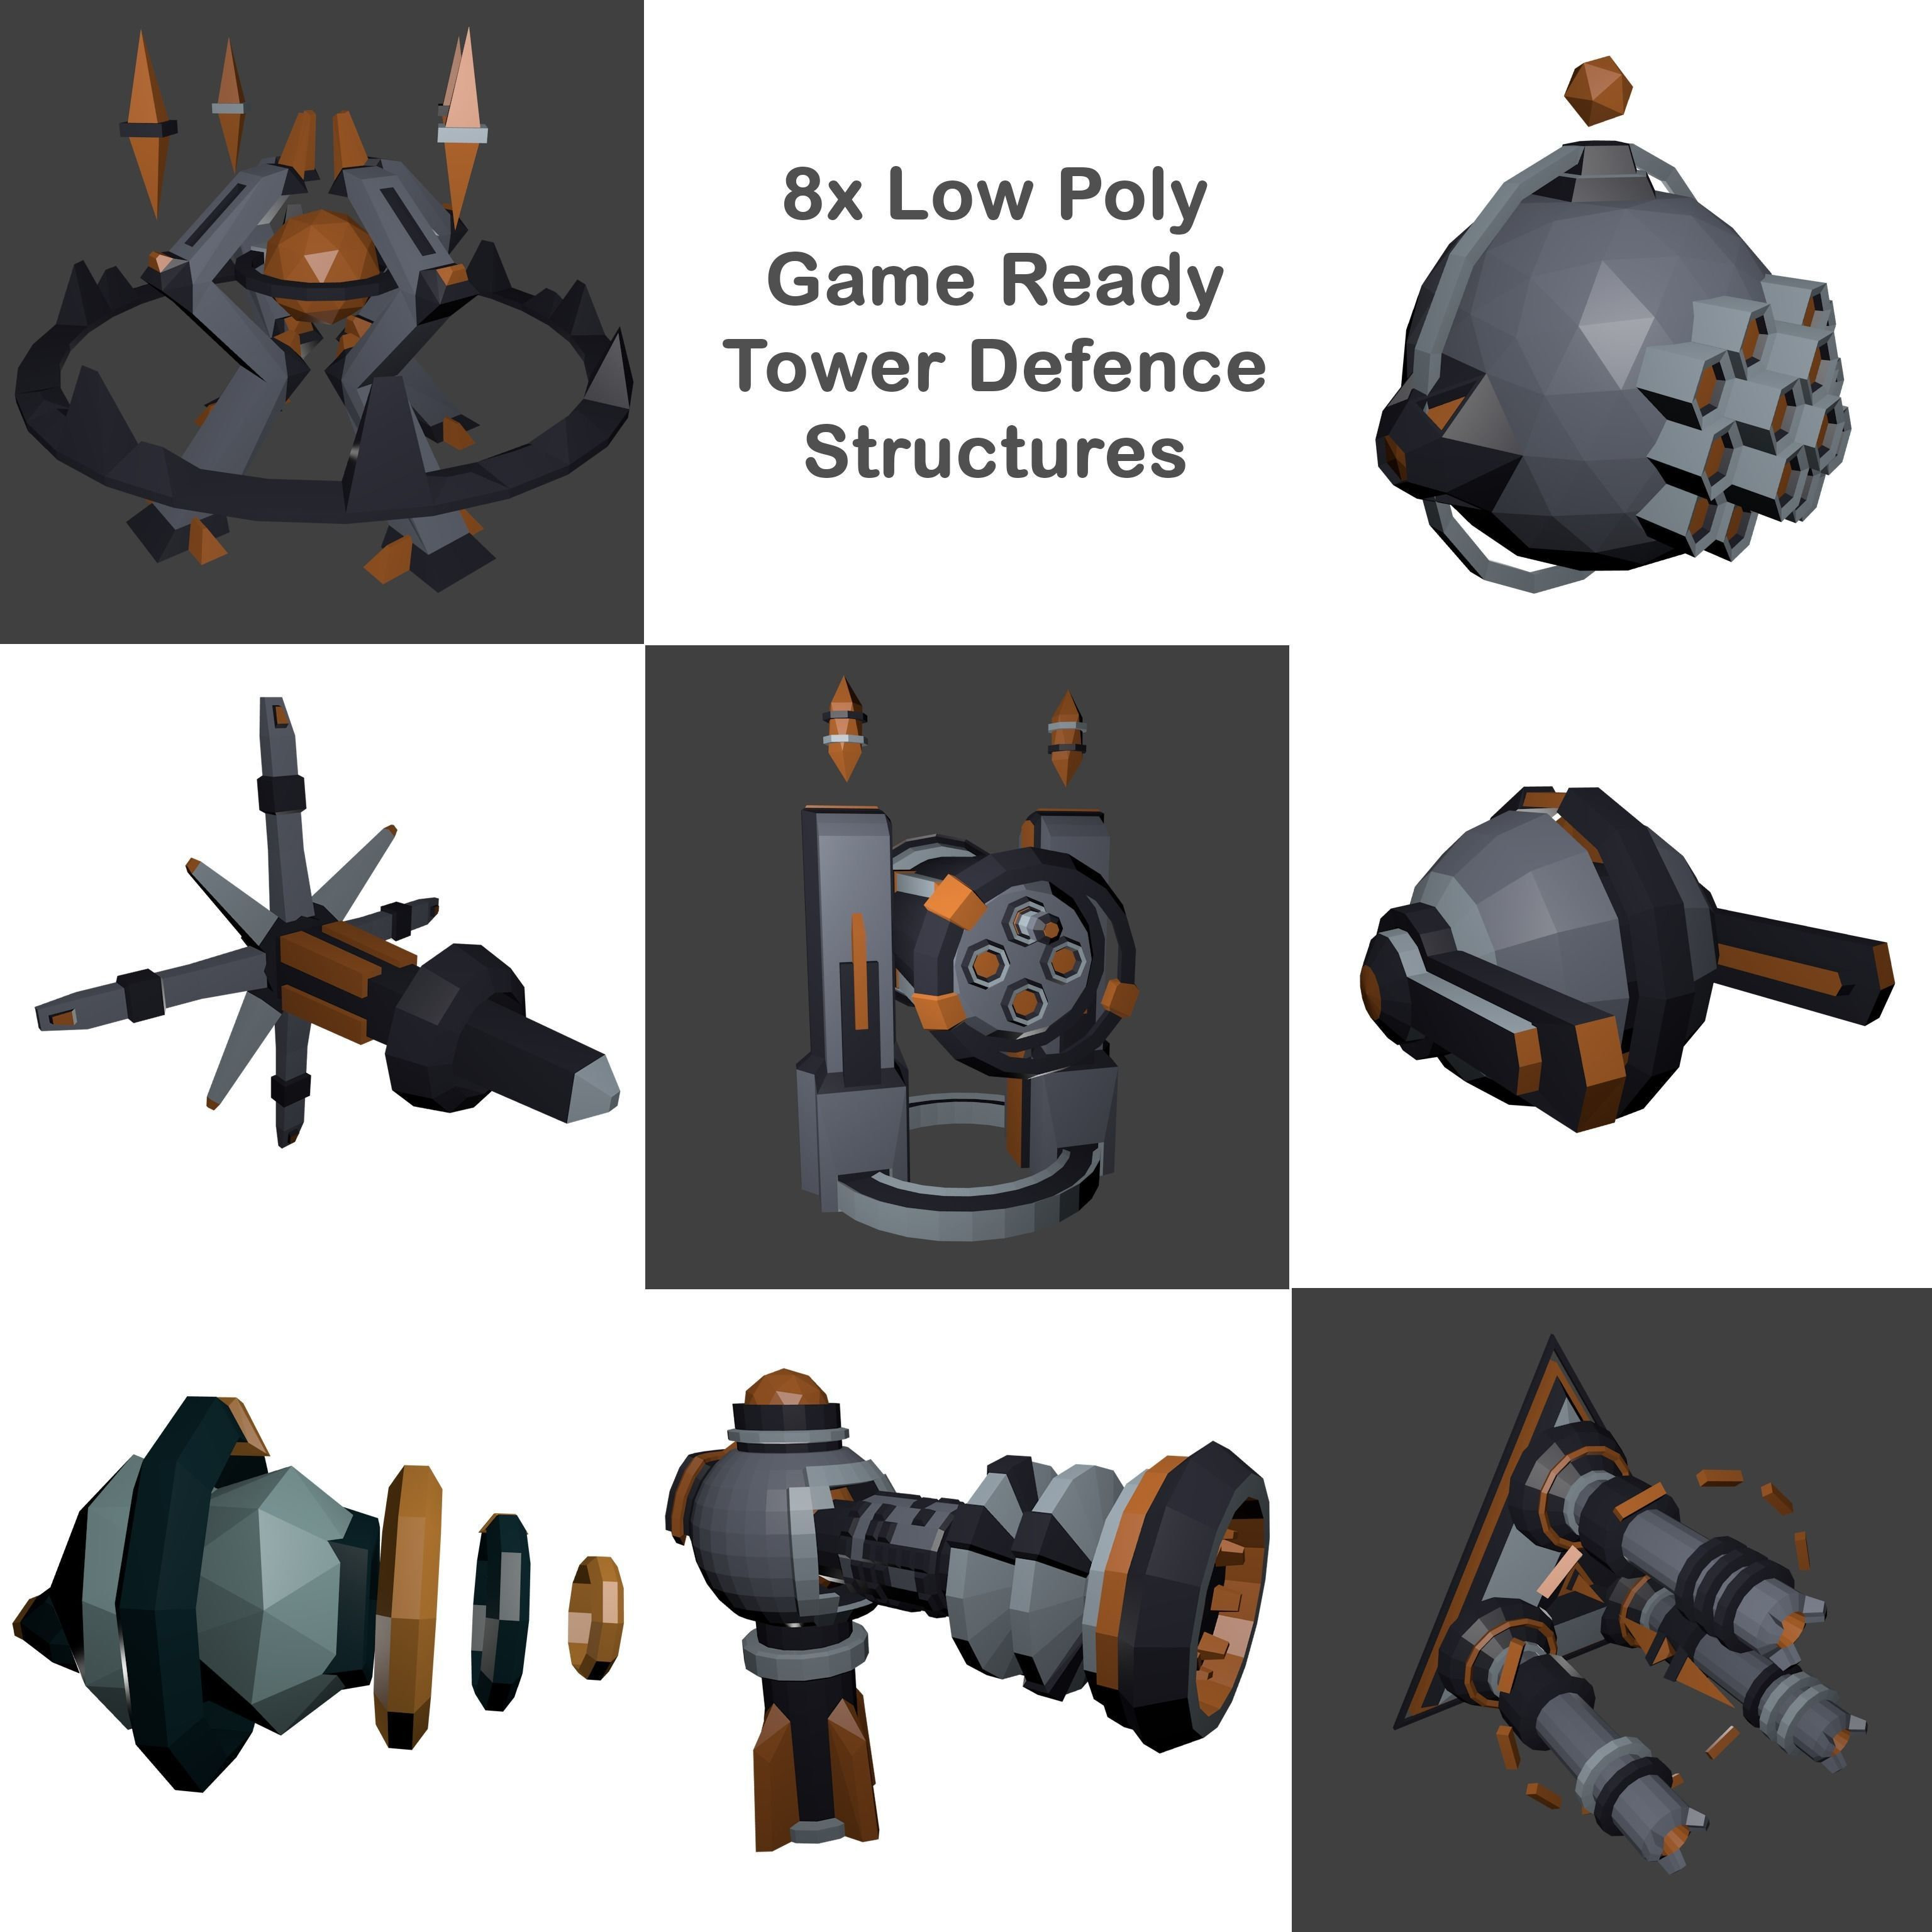 8x Low-Poly Tower Defence Models and Base - Game ready